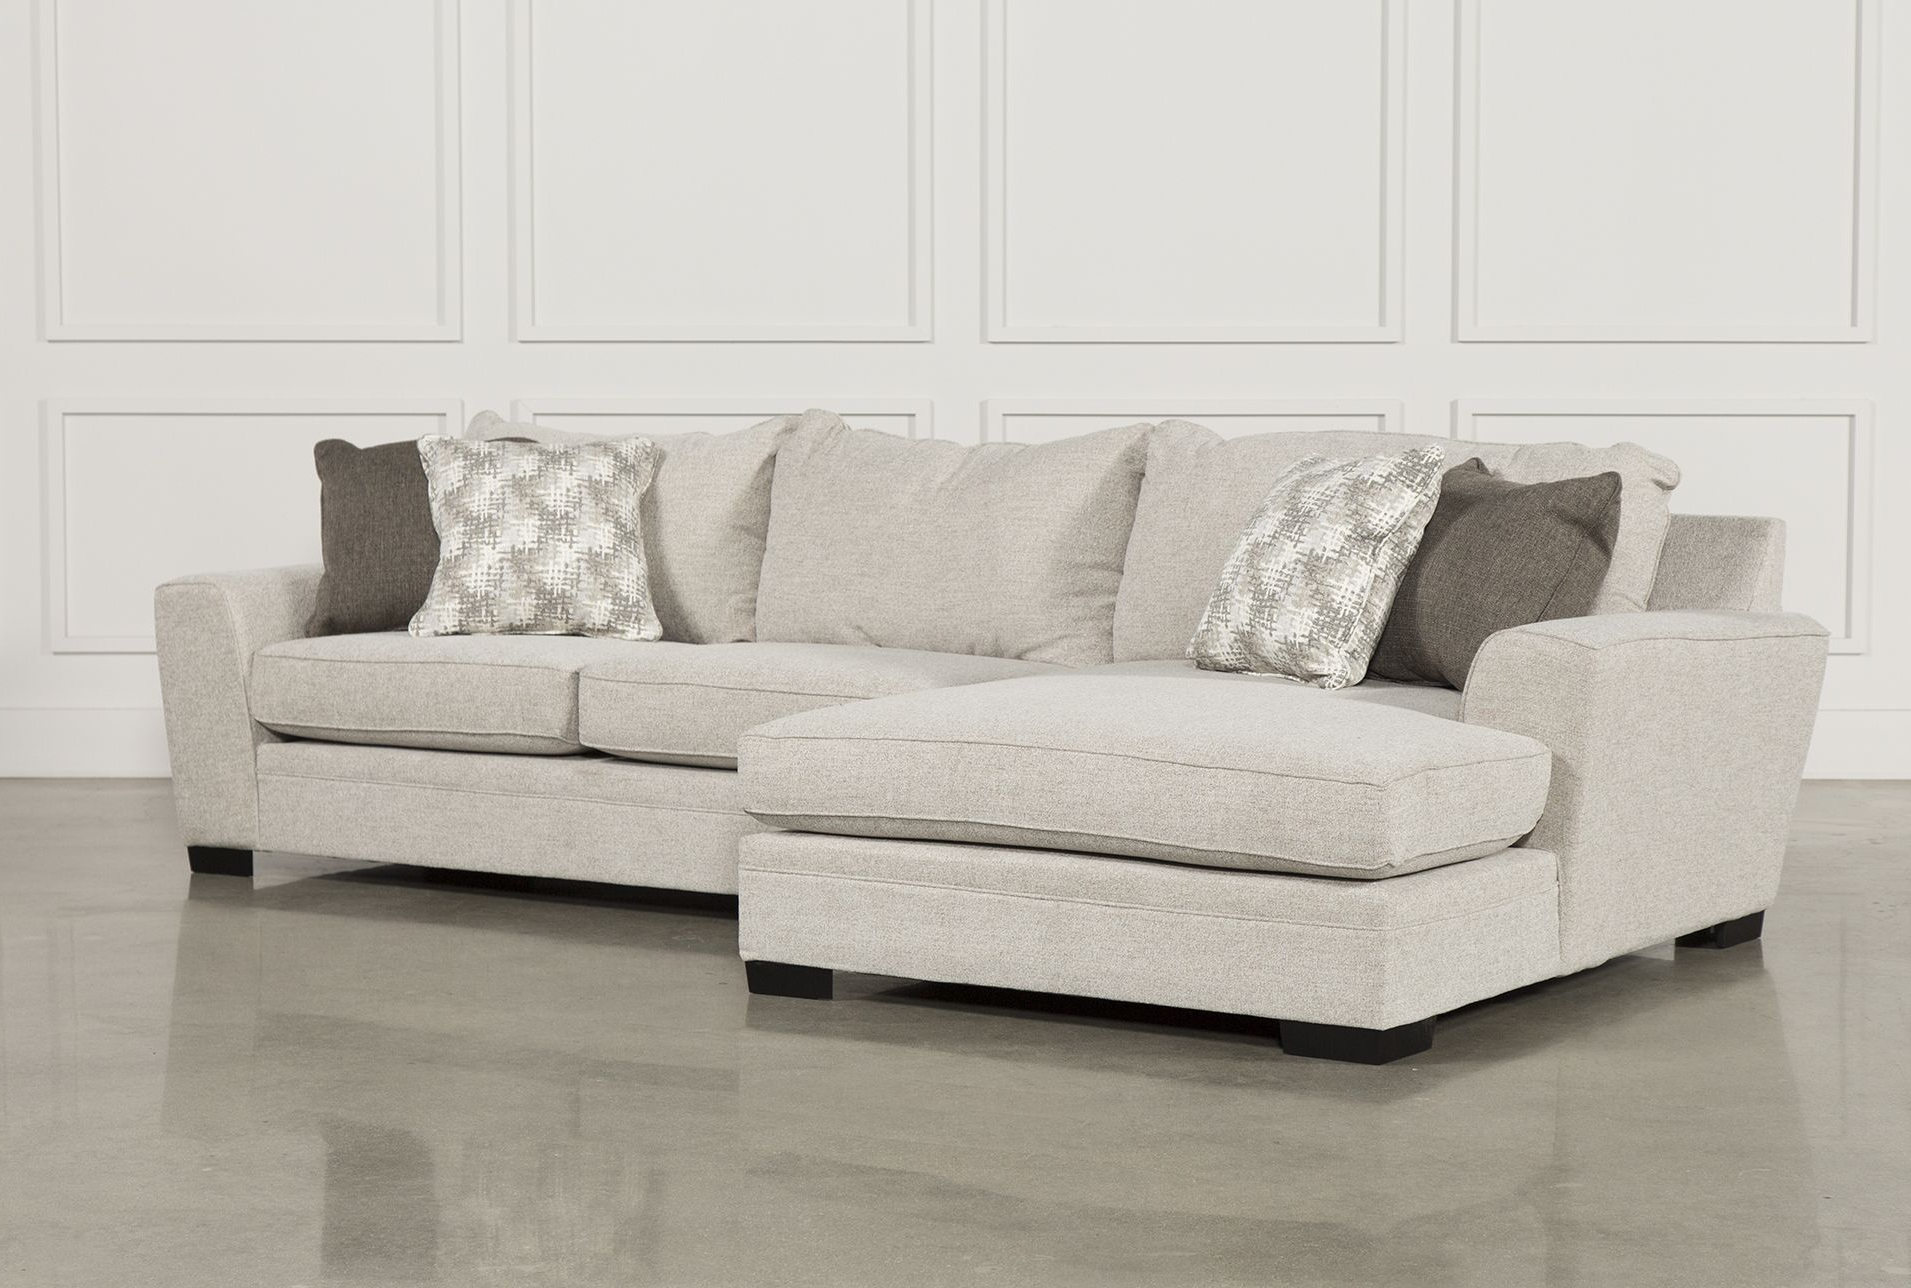 Arrowmask 2 Piece Sectionals With Laf Chaise In Newest Delano 2 Piece Sectional W/laf Oversized Chaise Living Spaces (View 5 of 20)